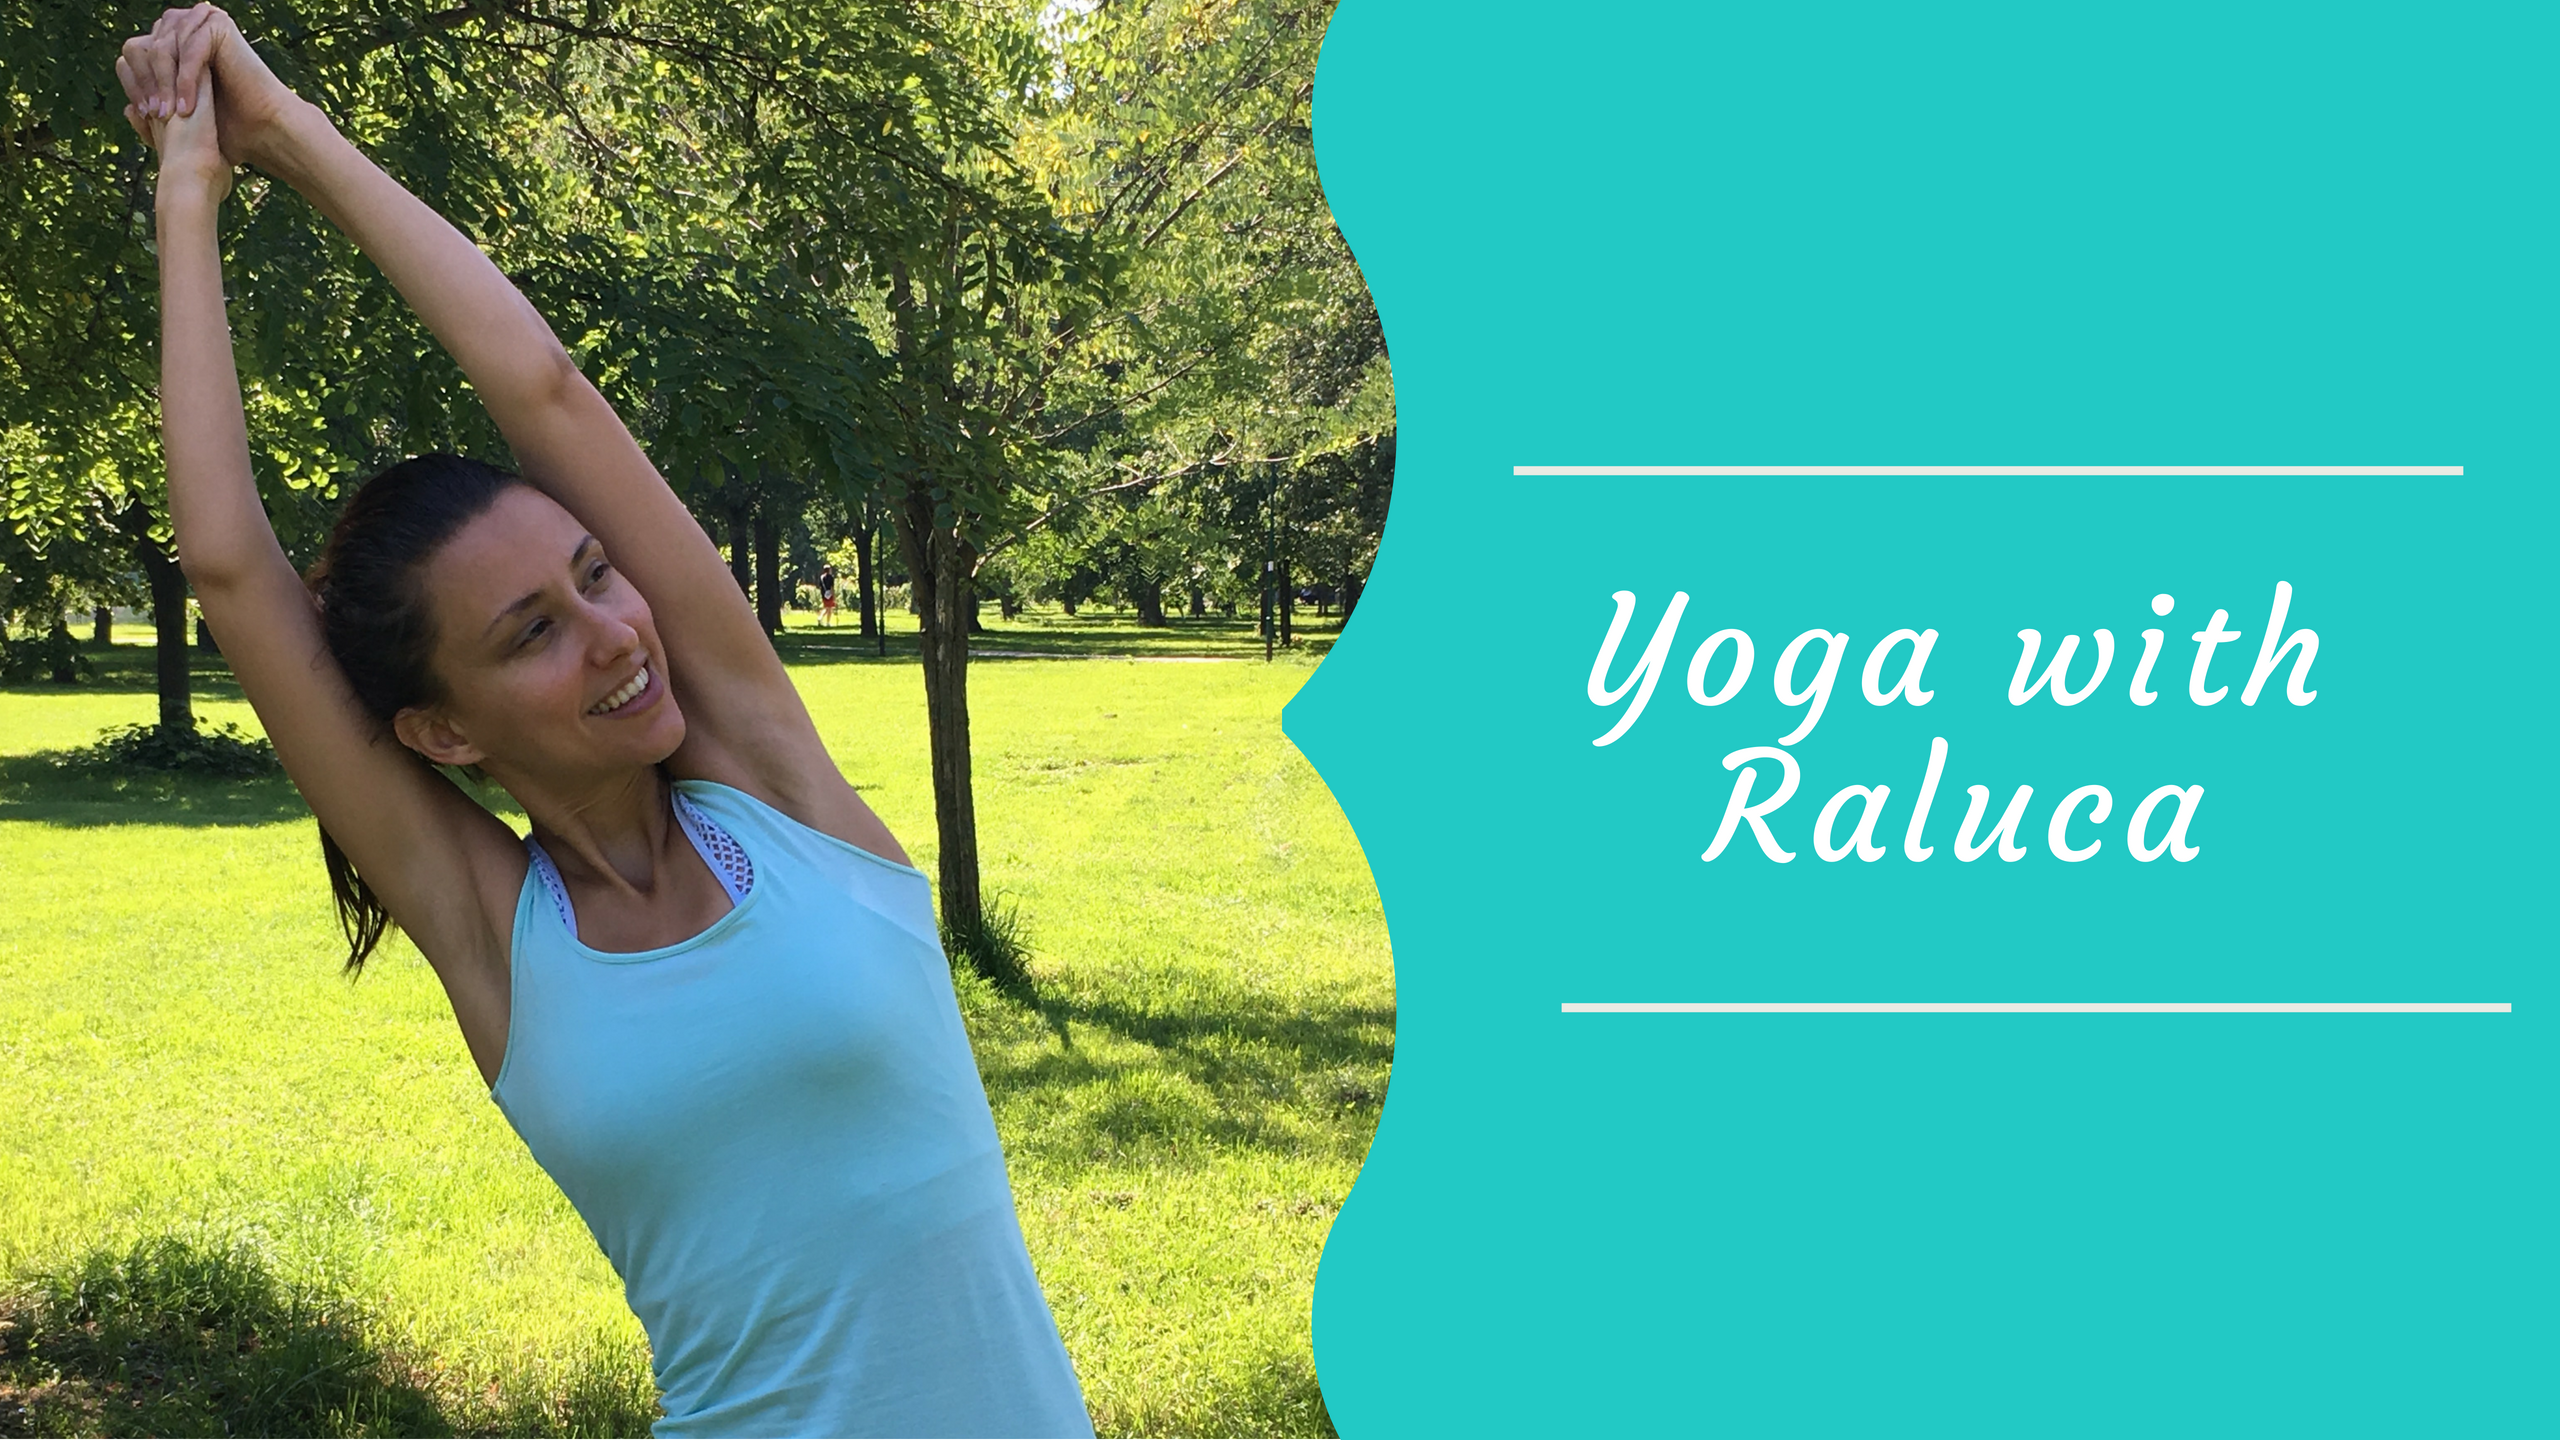 Yoga With Raluca: Yoga, Massage, Meditation Newsletter